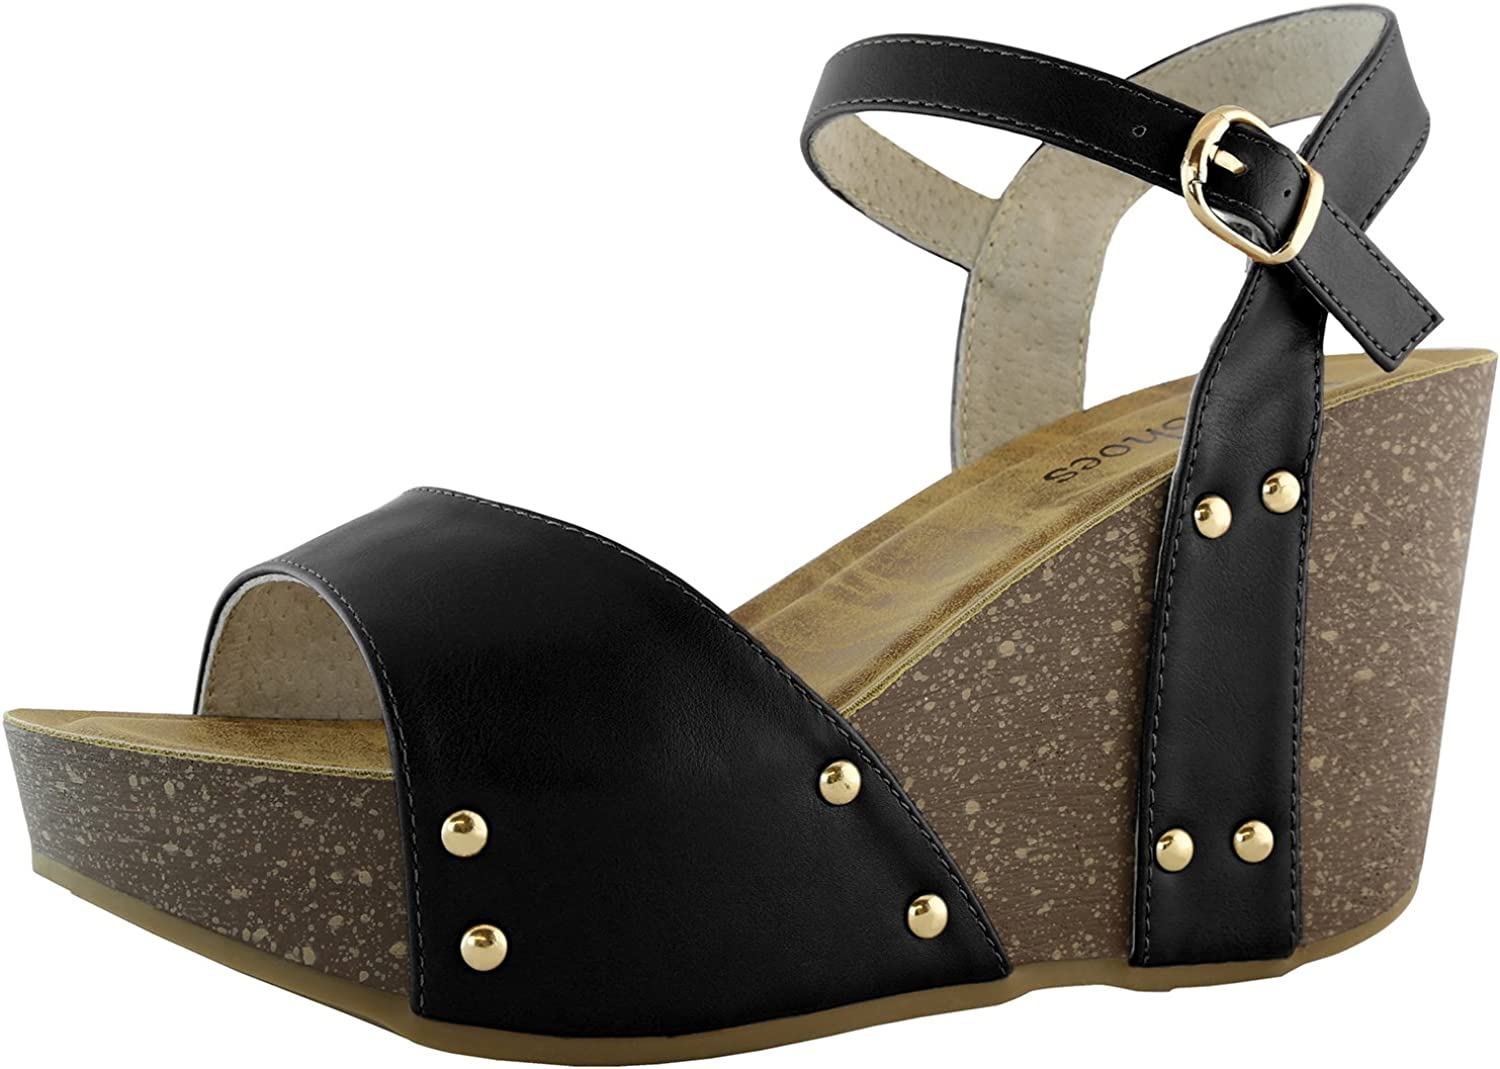 Dailyshoes Women's Slide On Wedge Comfort Chunky Platform Open Toe Casual Sandals Buckle shoes